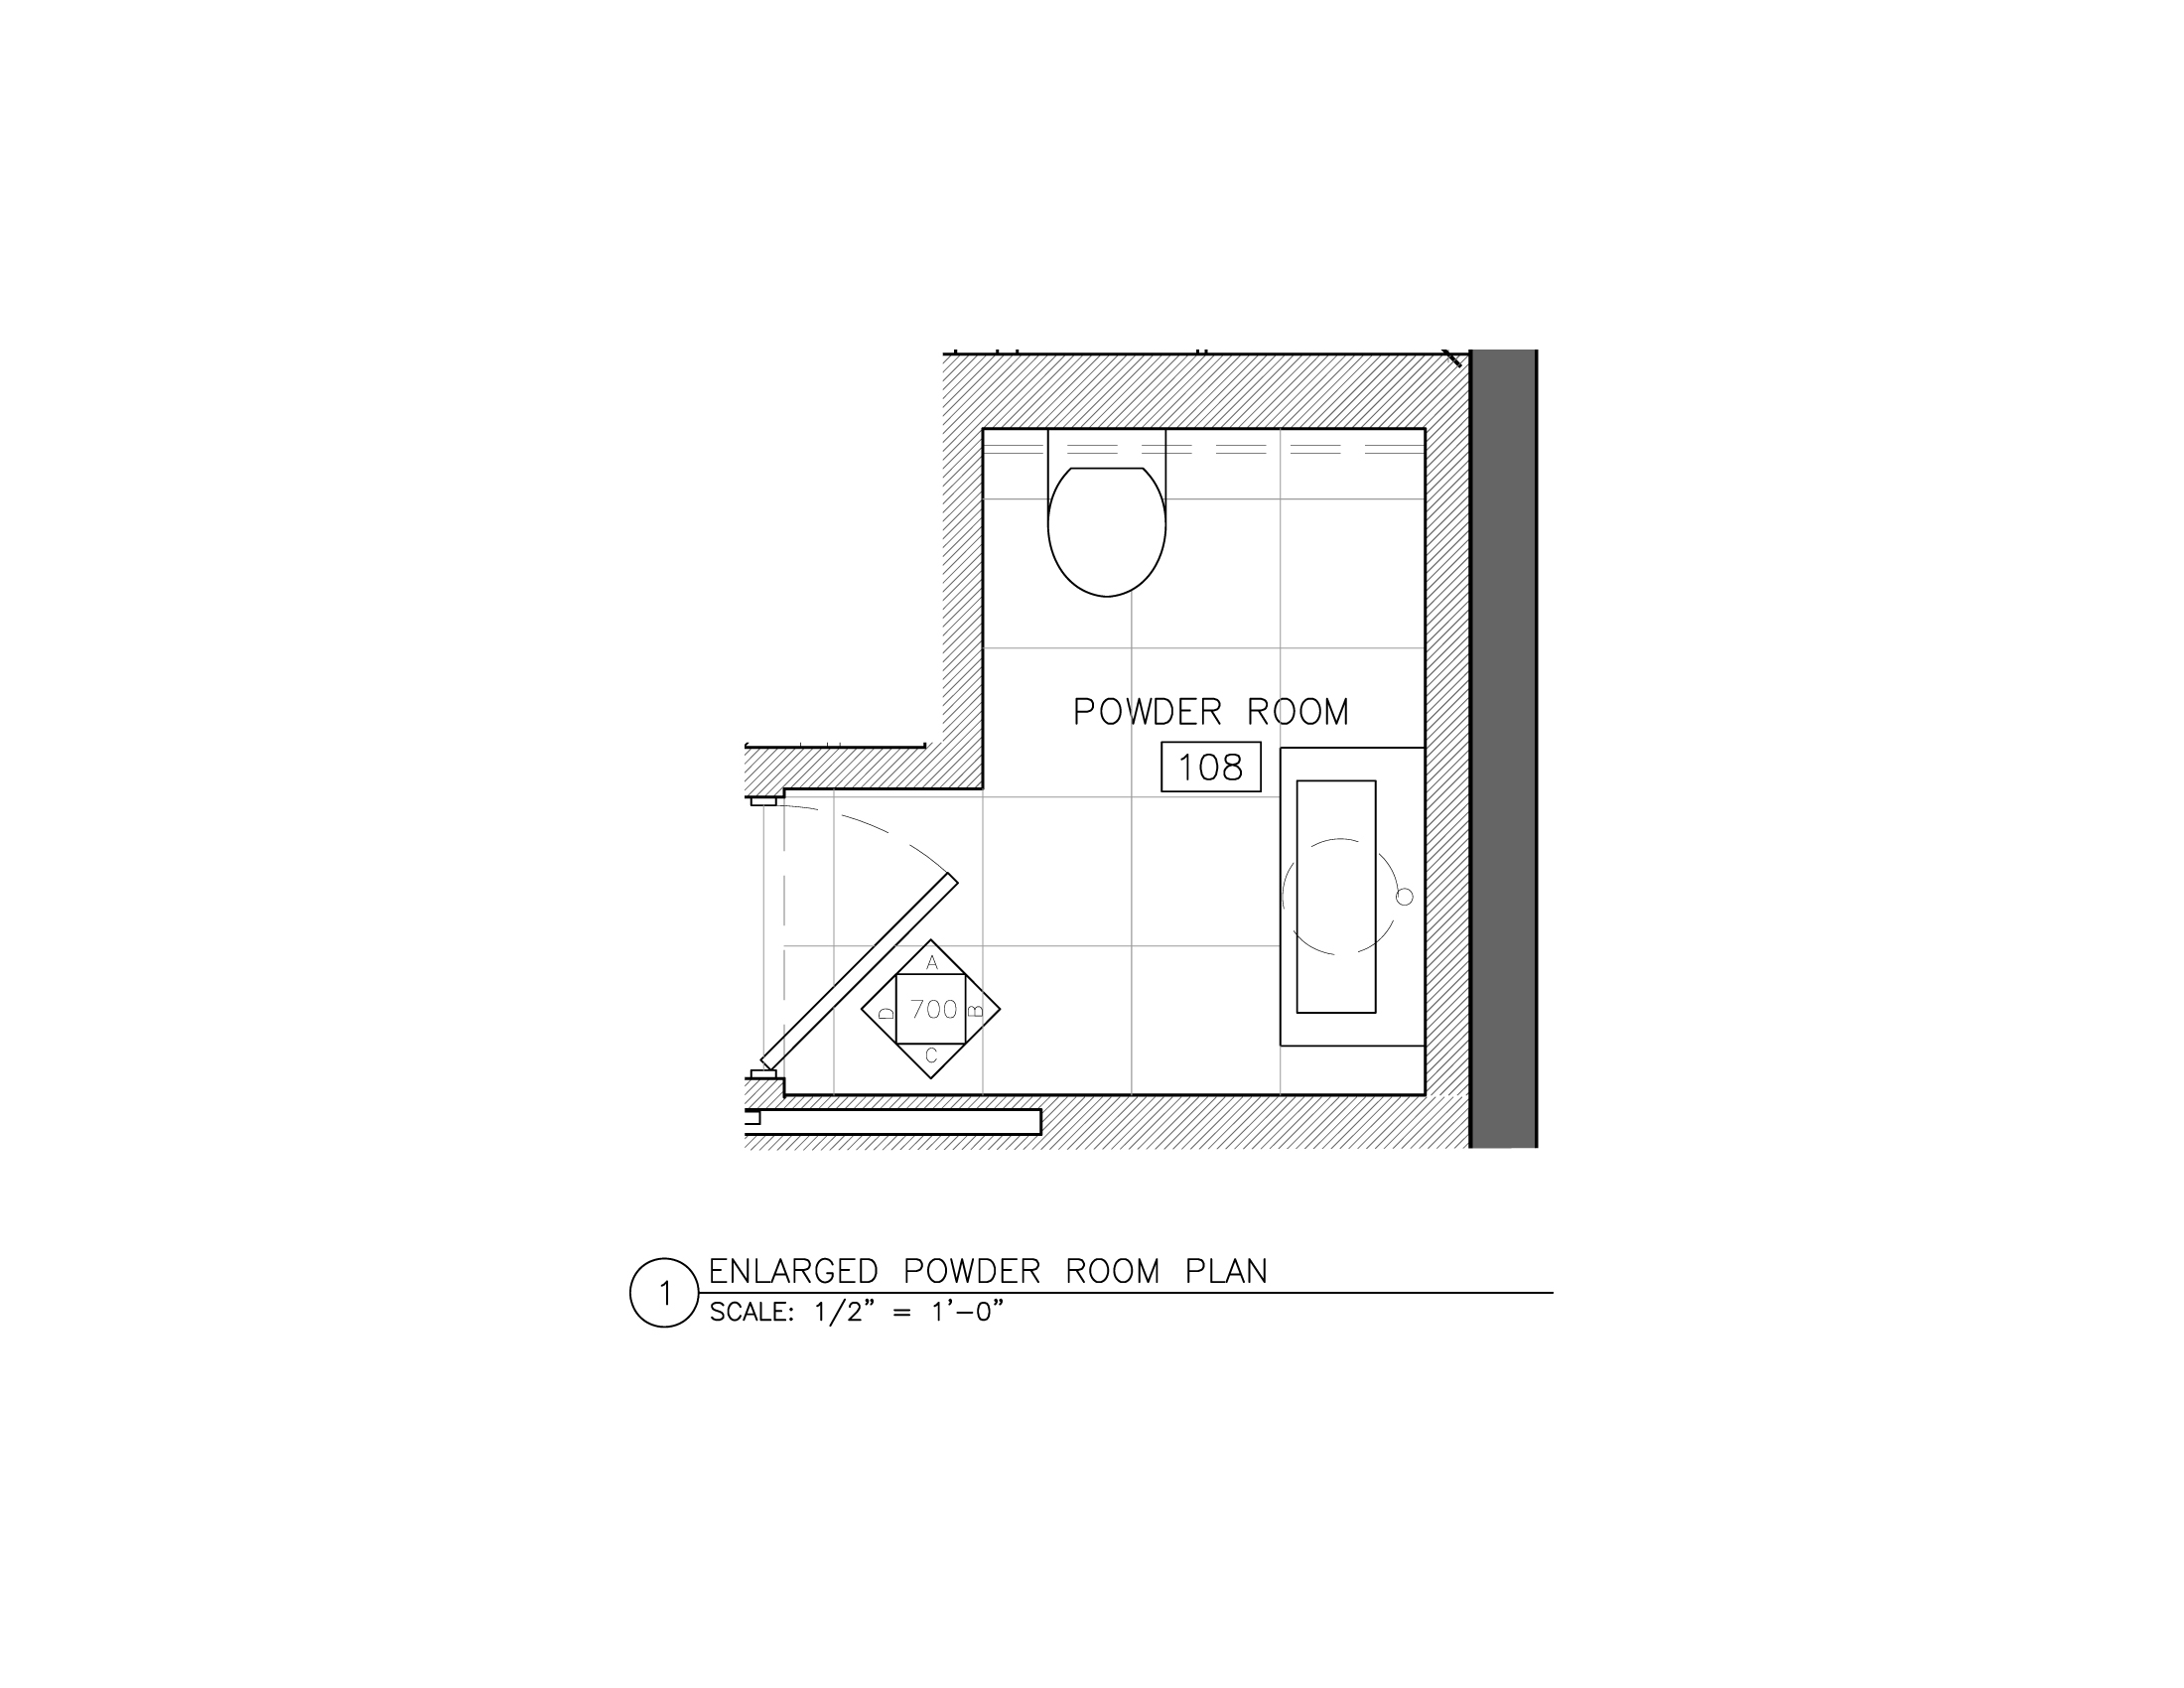 19 Genius Small Room Floor Plans - House Plans | 13924